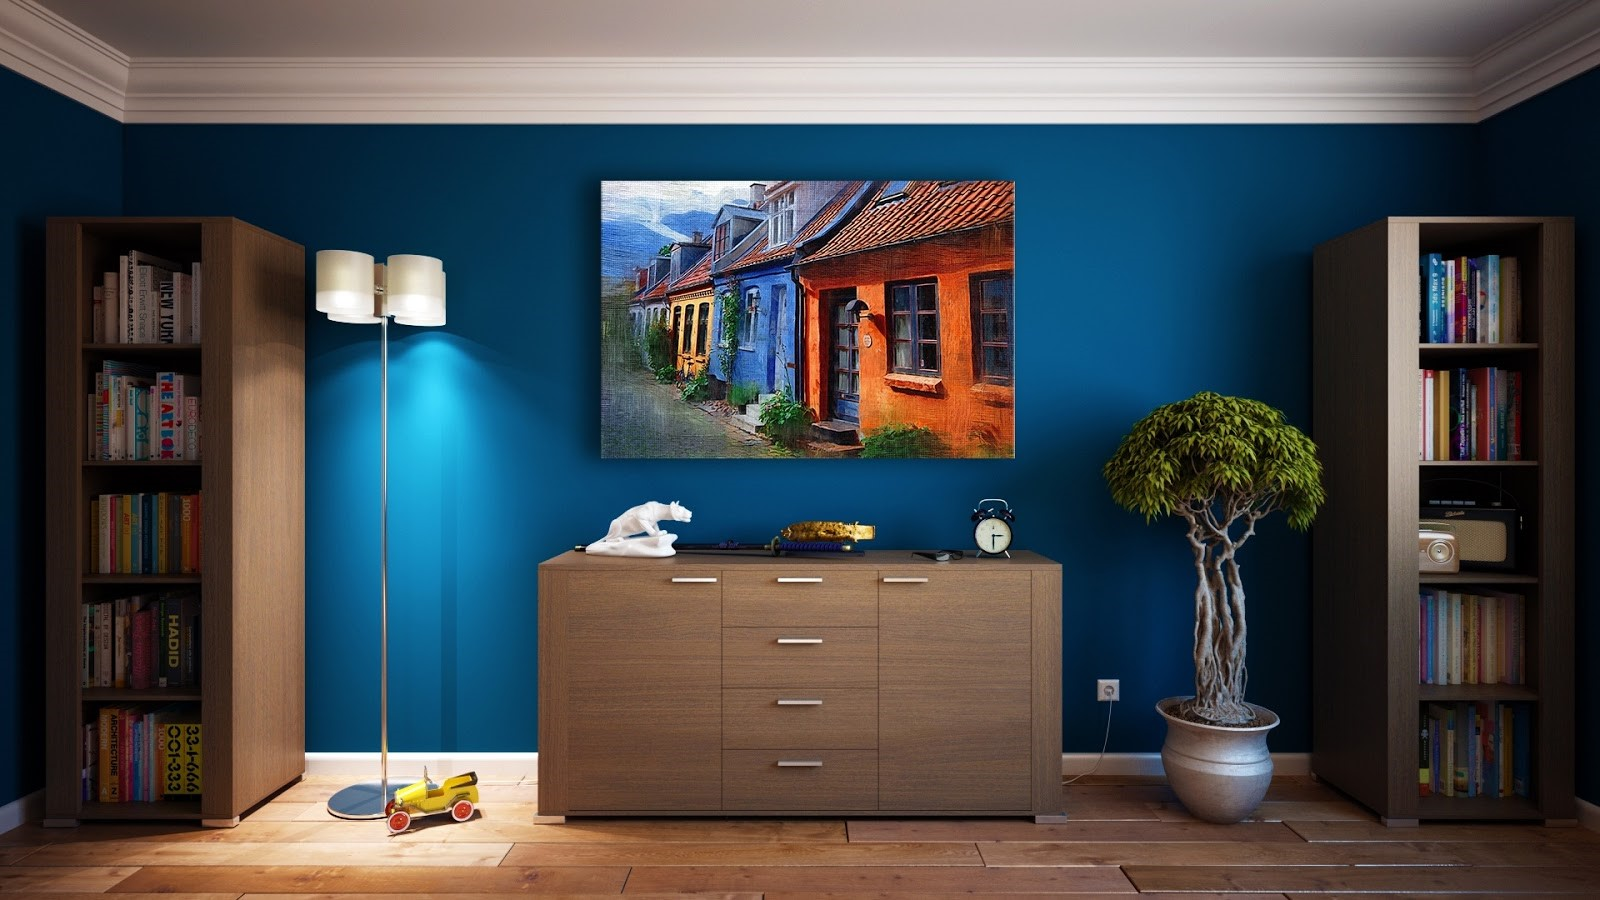 Home Sweet Home: Spruce up Your Rental Apartment